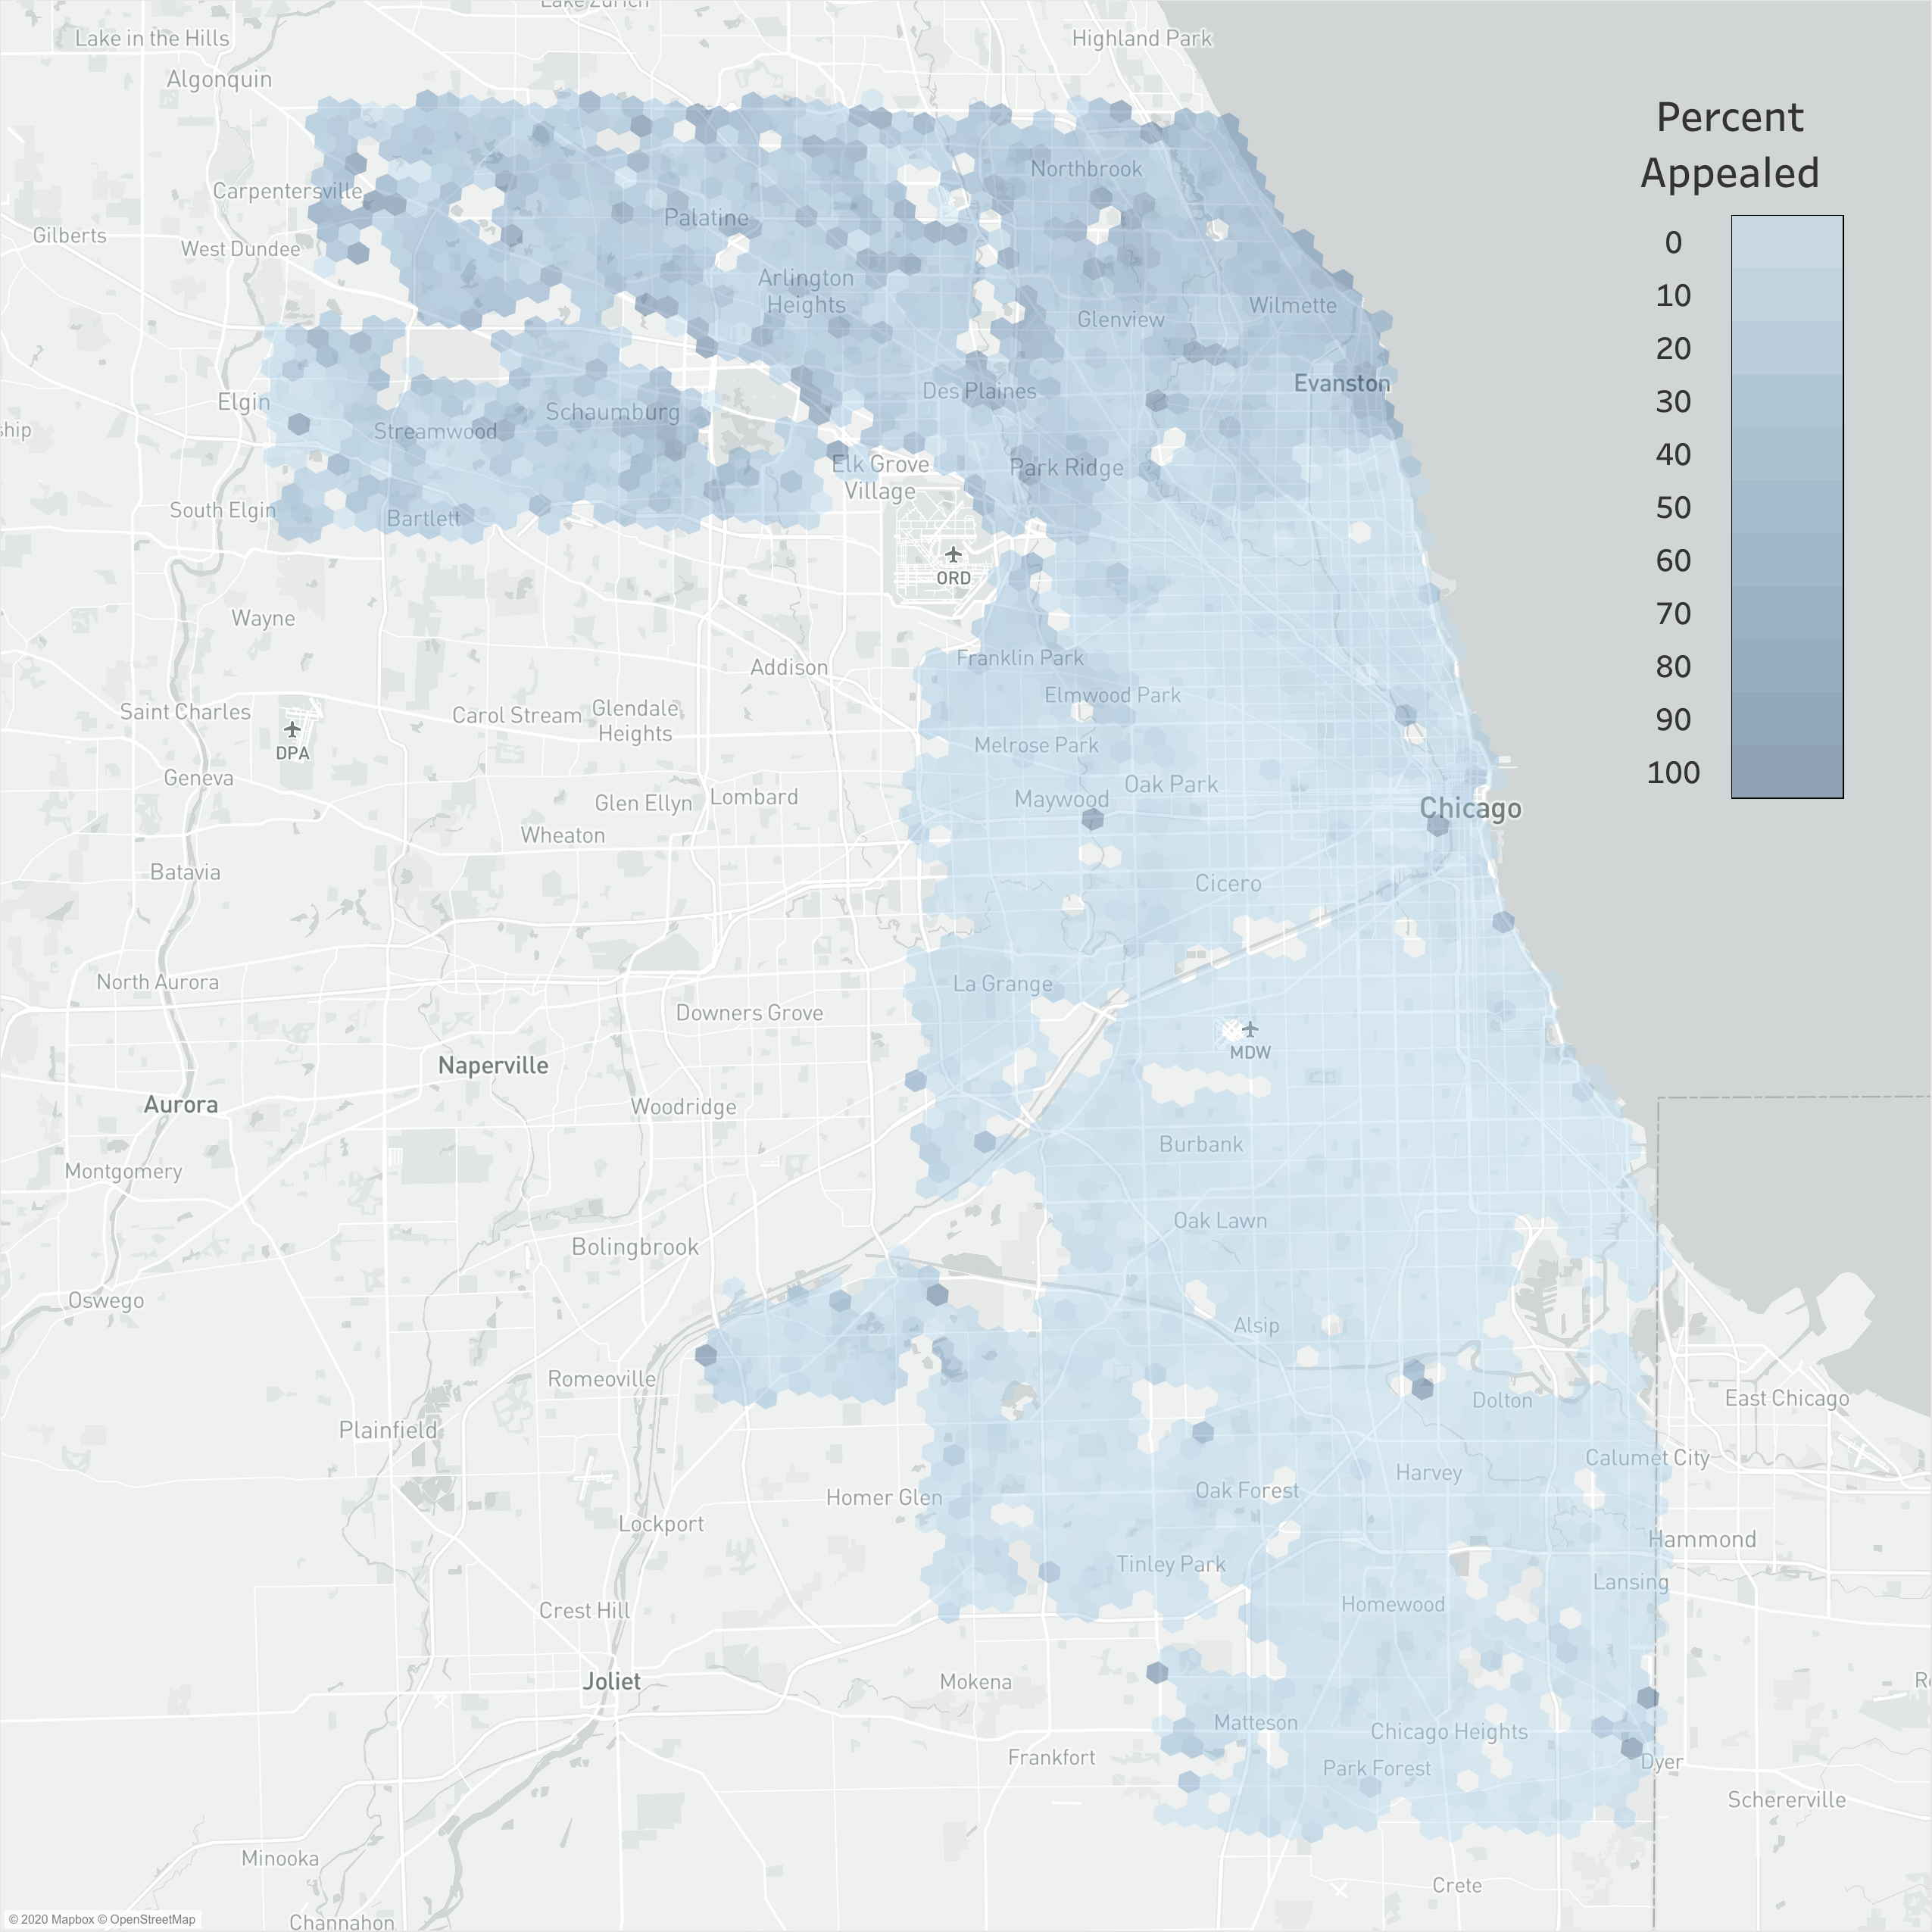 map of cook county illinois with color highlighting of regions according to the percentage of properties that appealed their assessed value.